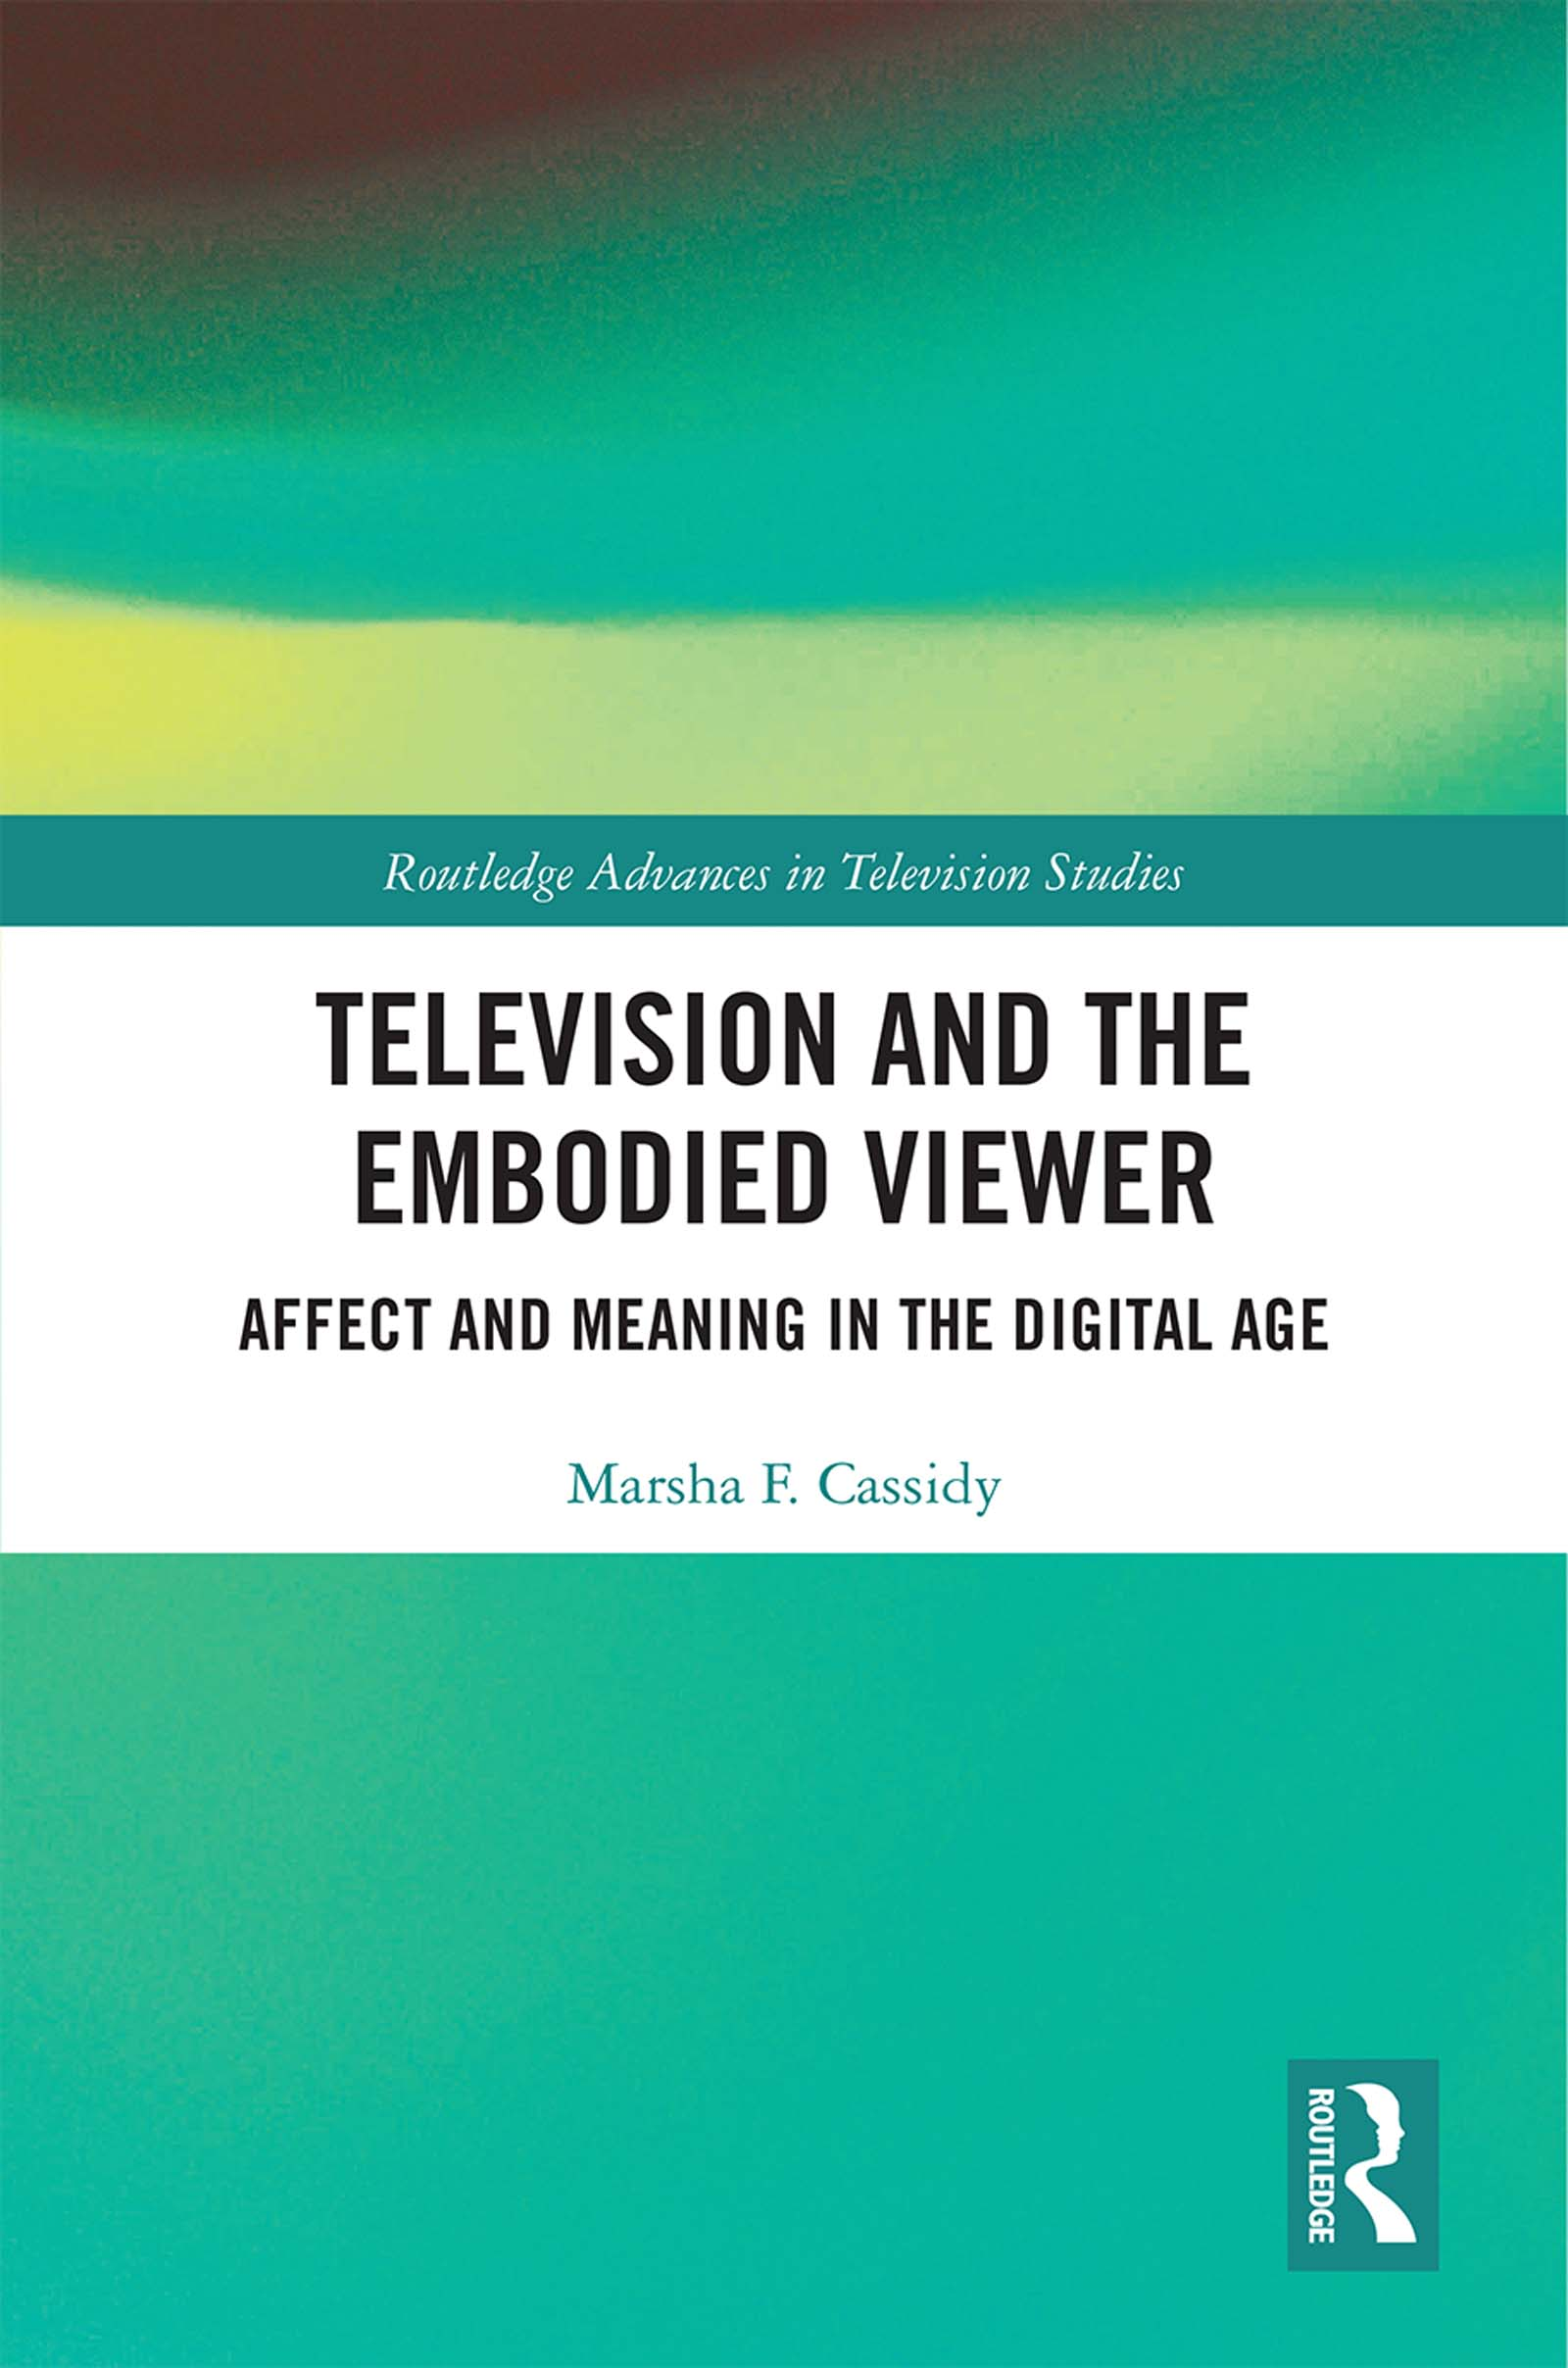 Television and the Embodied Viewer